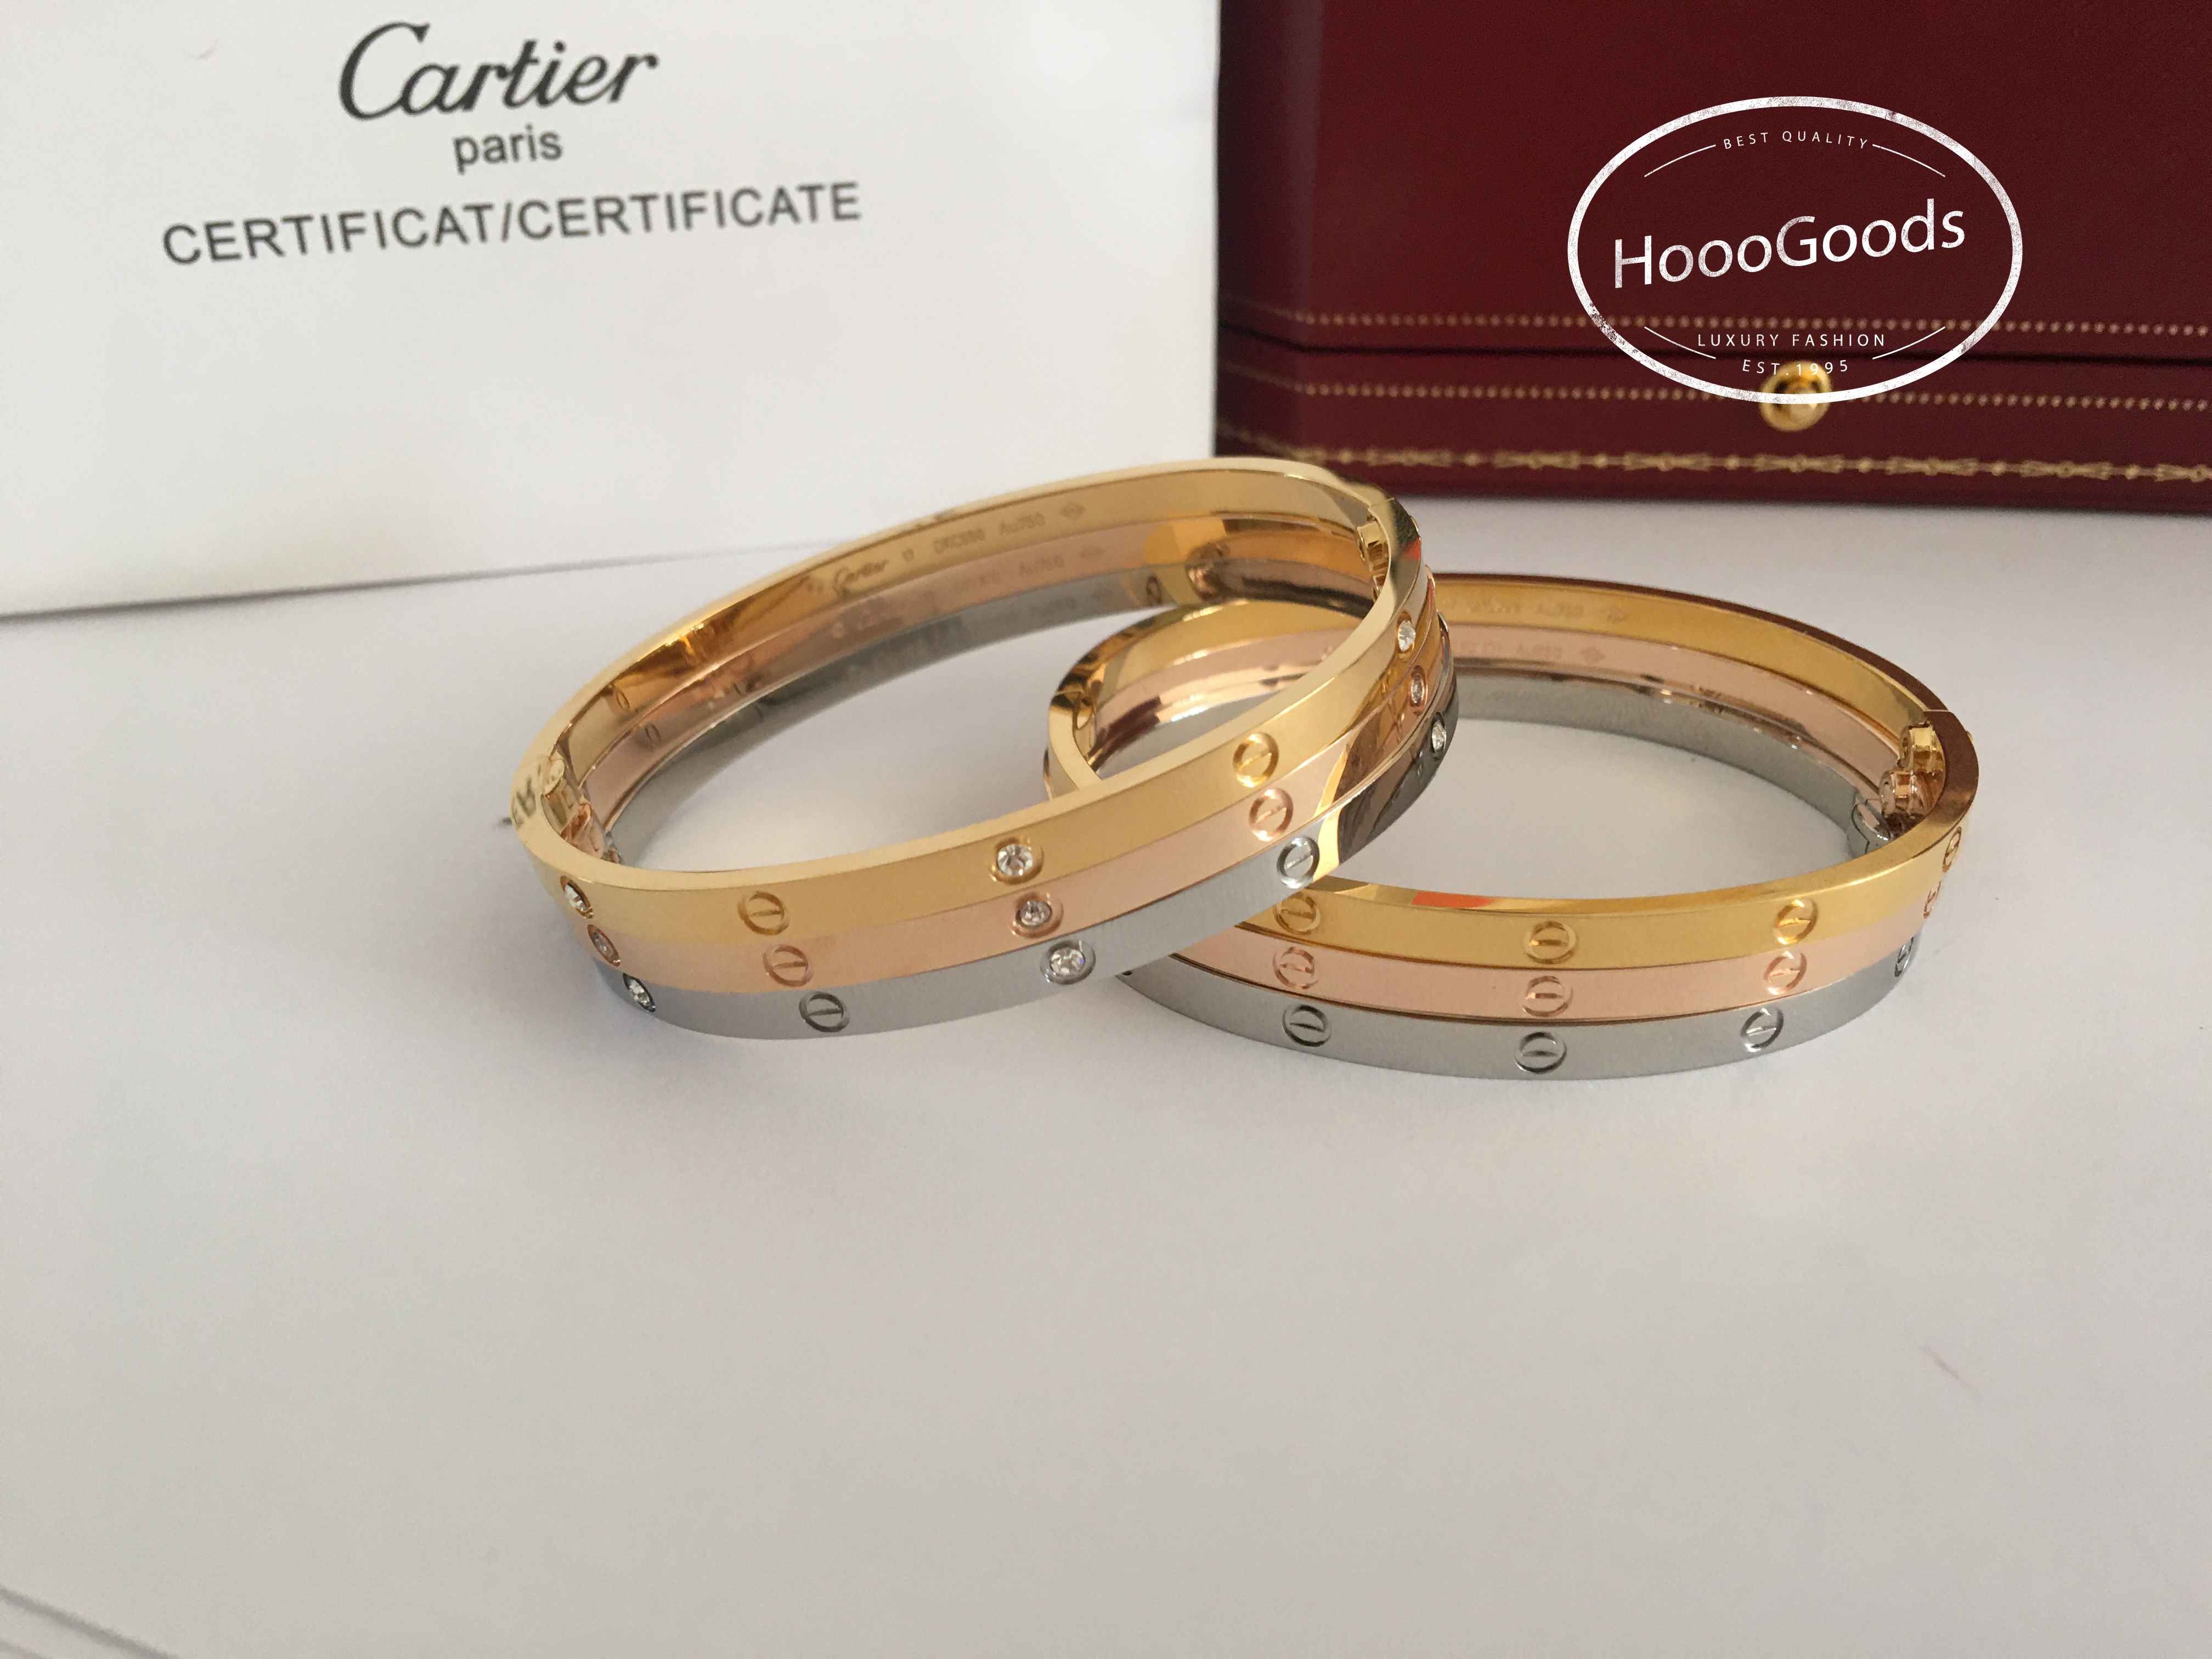 Cartier thin love bracelet diamonds and no diamond in white, pink, yellow gold